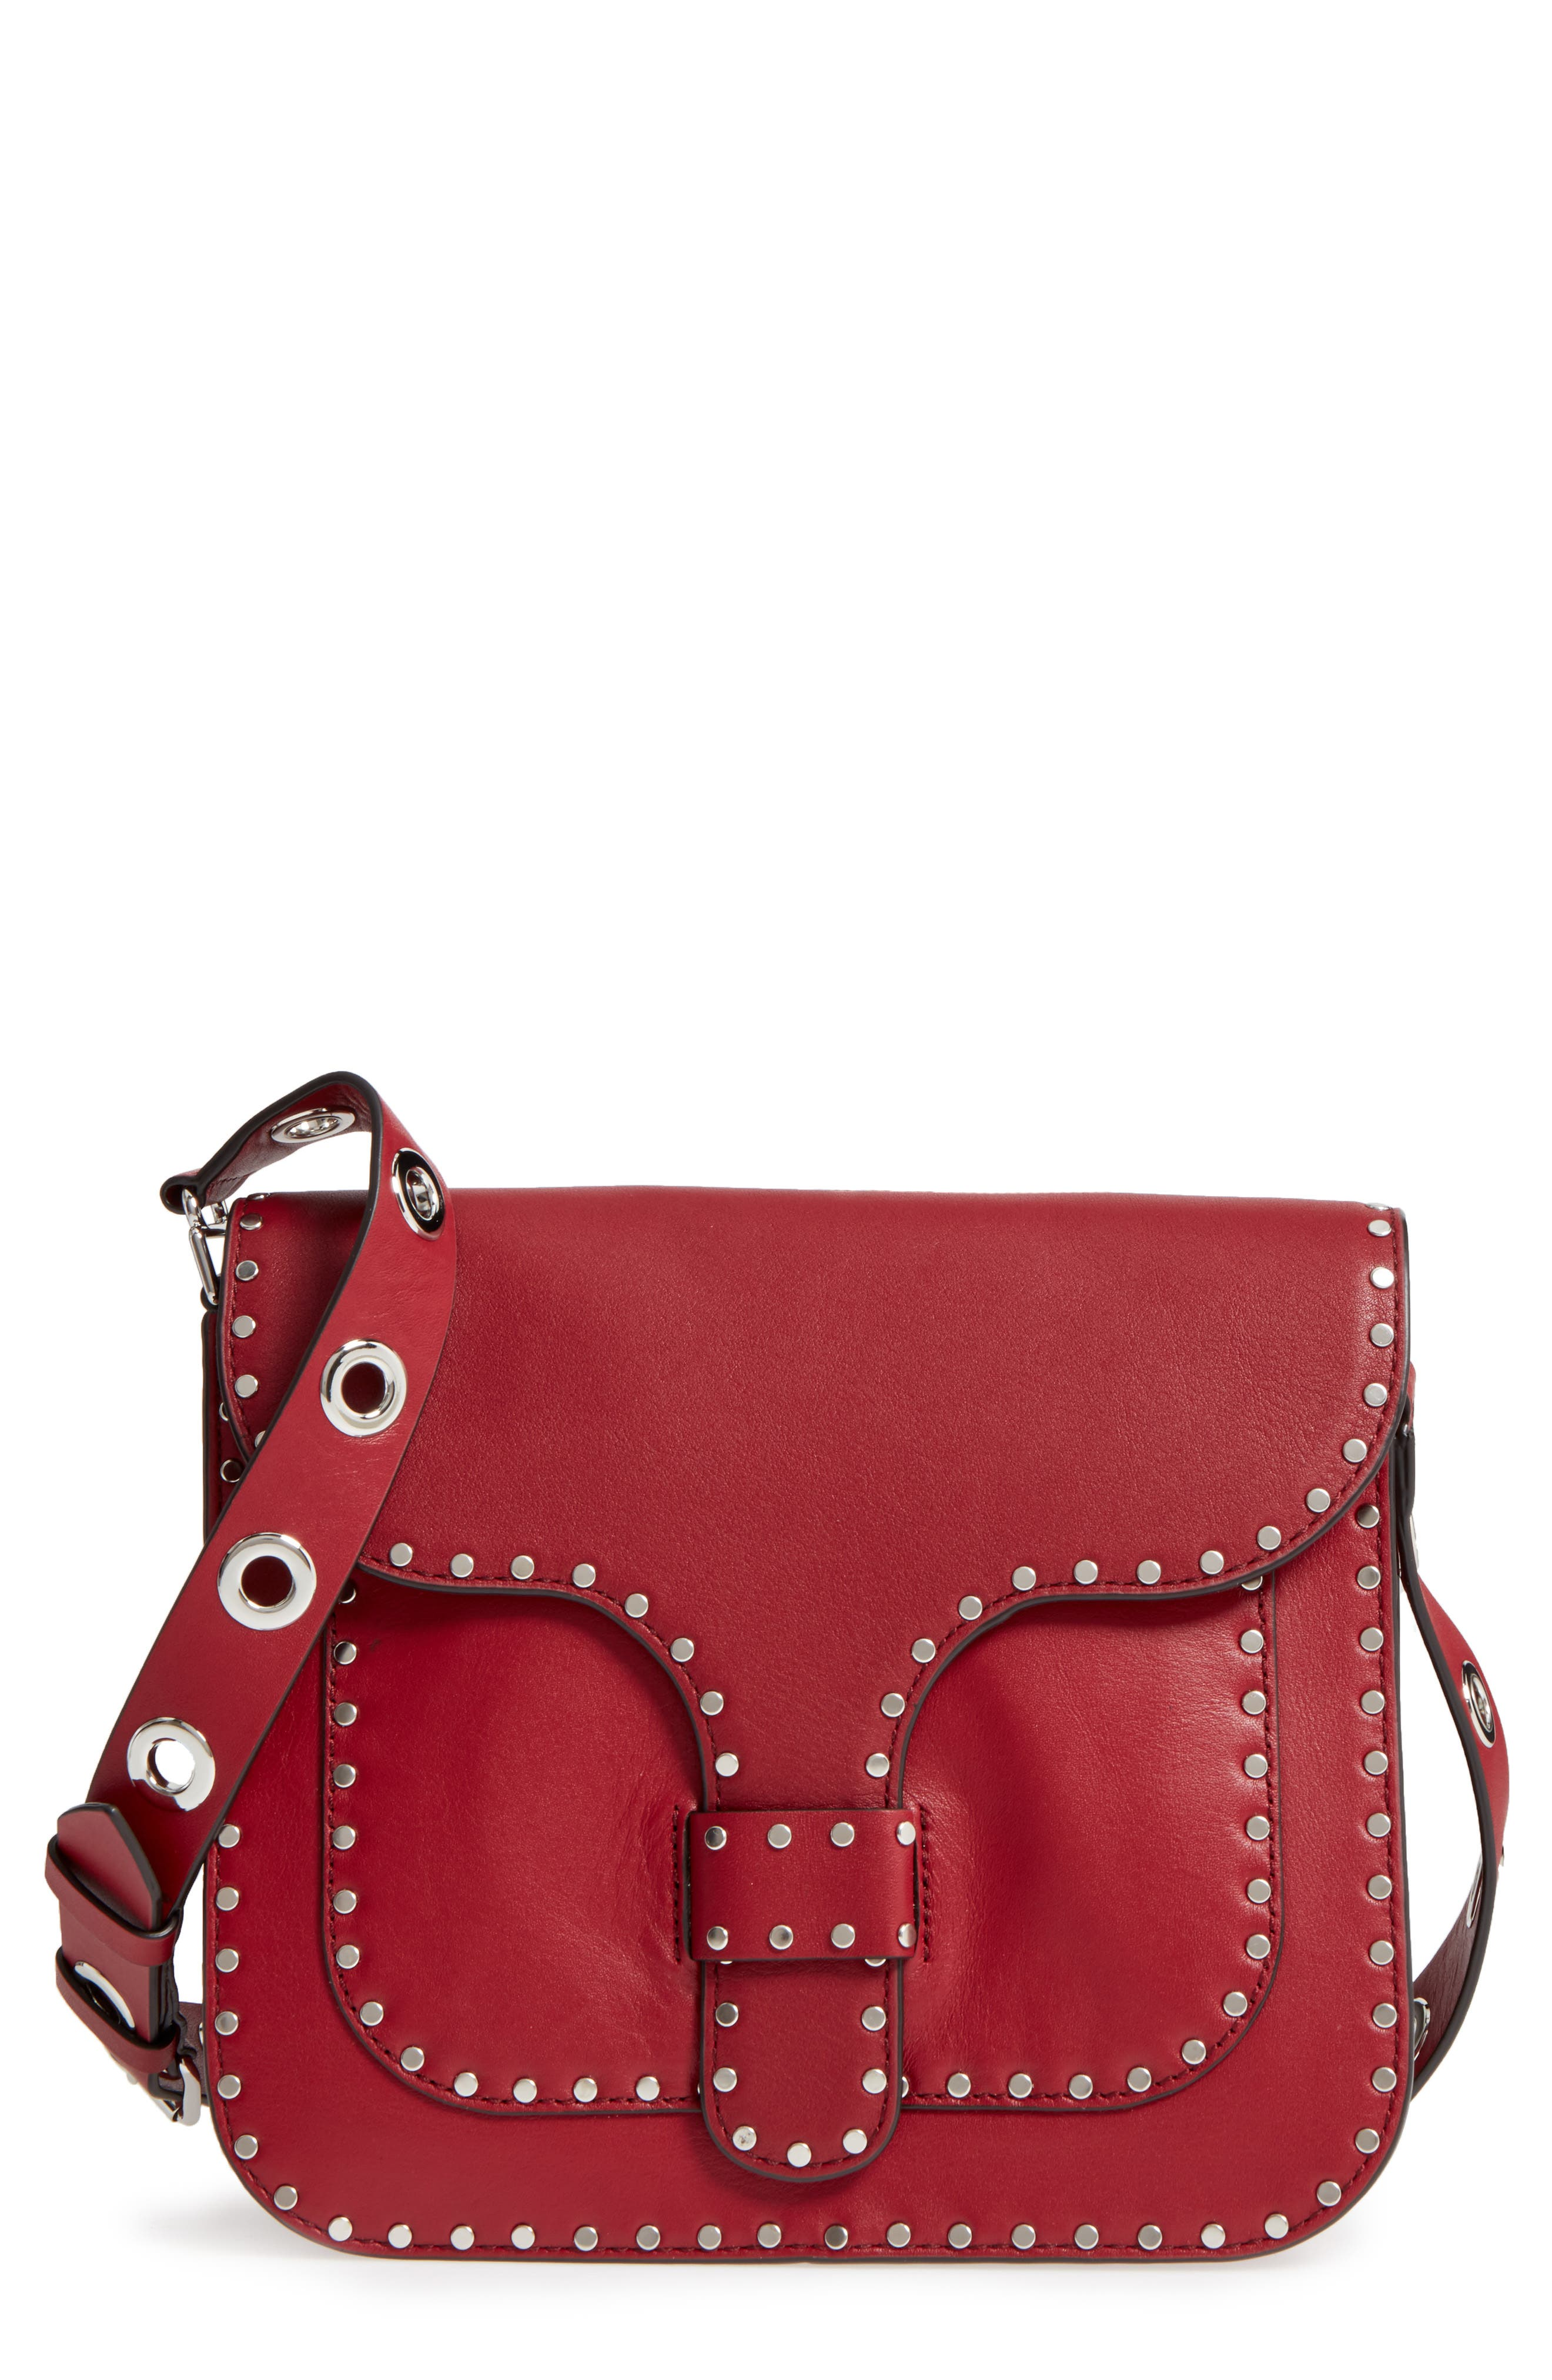 Alternate Image 1 Selected - Rebecca Minkoff Large Midnighter Leather Crossbody Bag